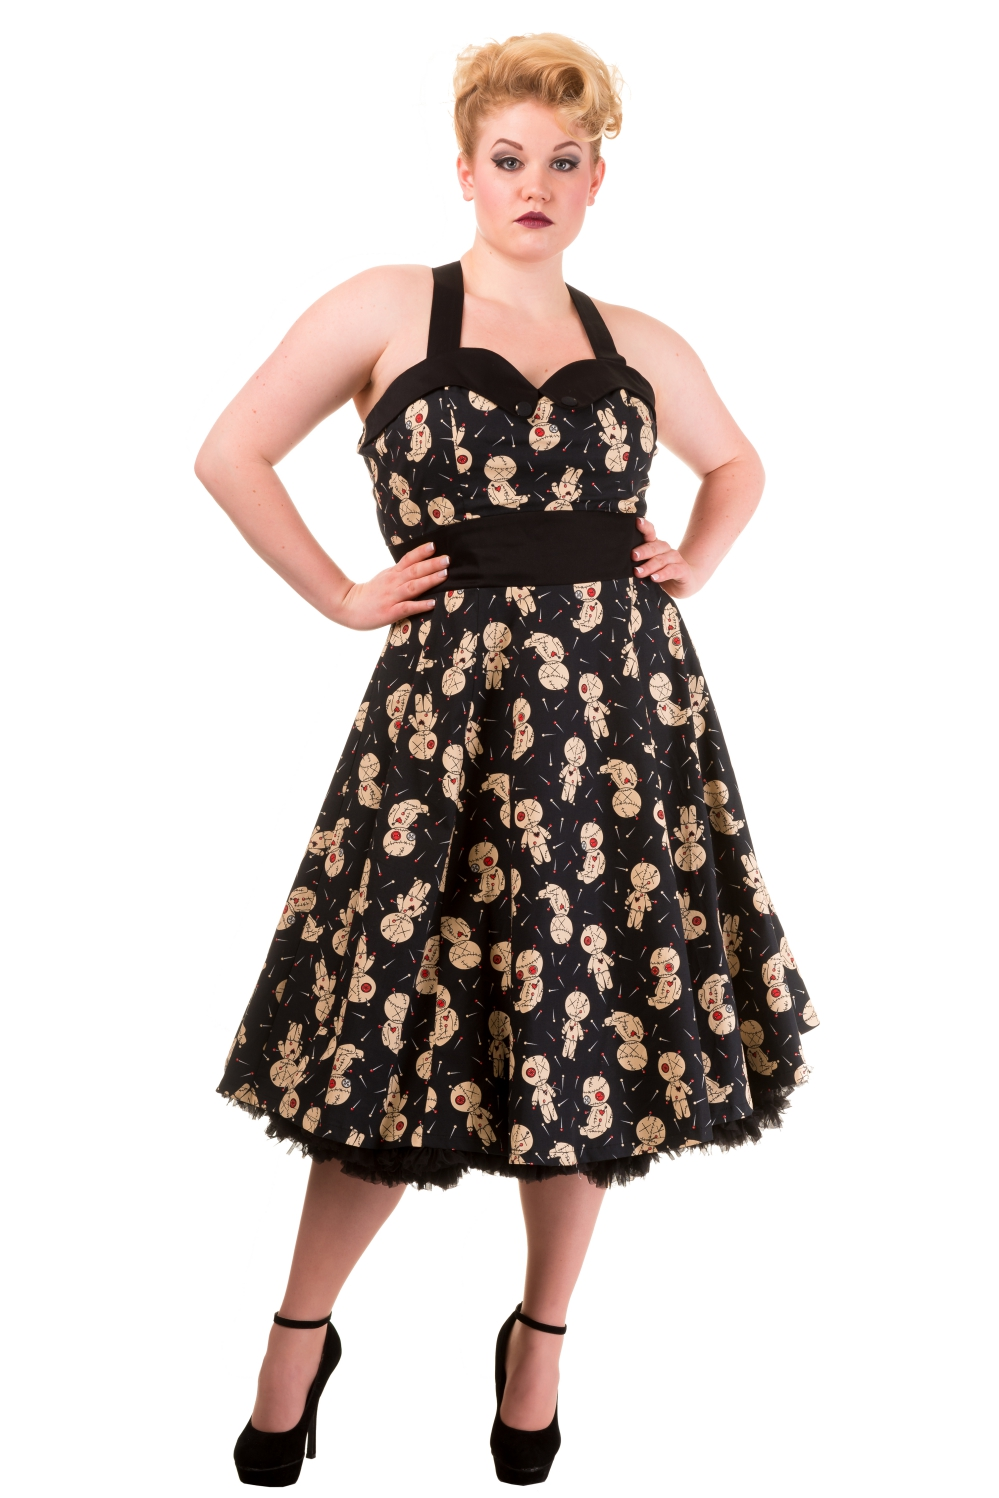 Banned Voodoo Dolls Distractions Plus Size Dress